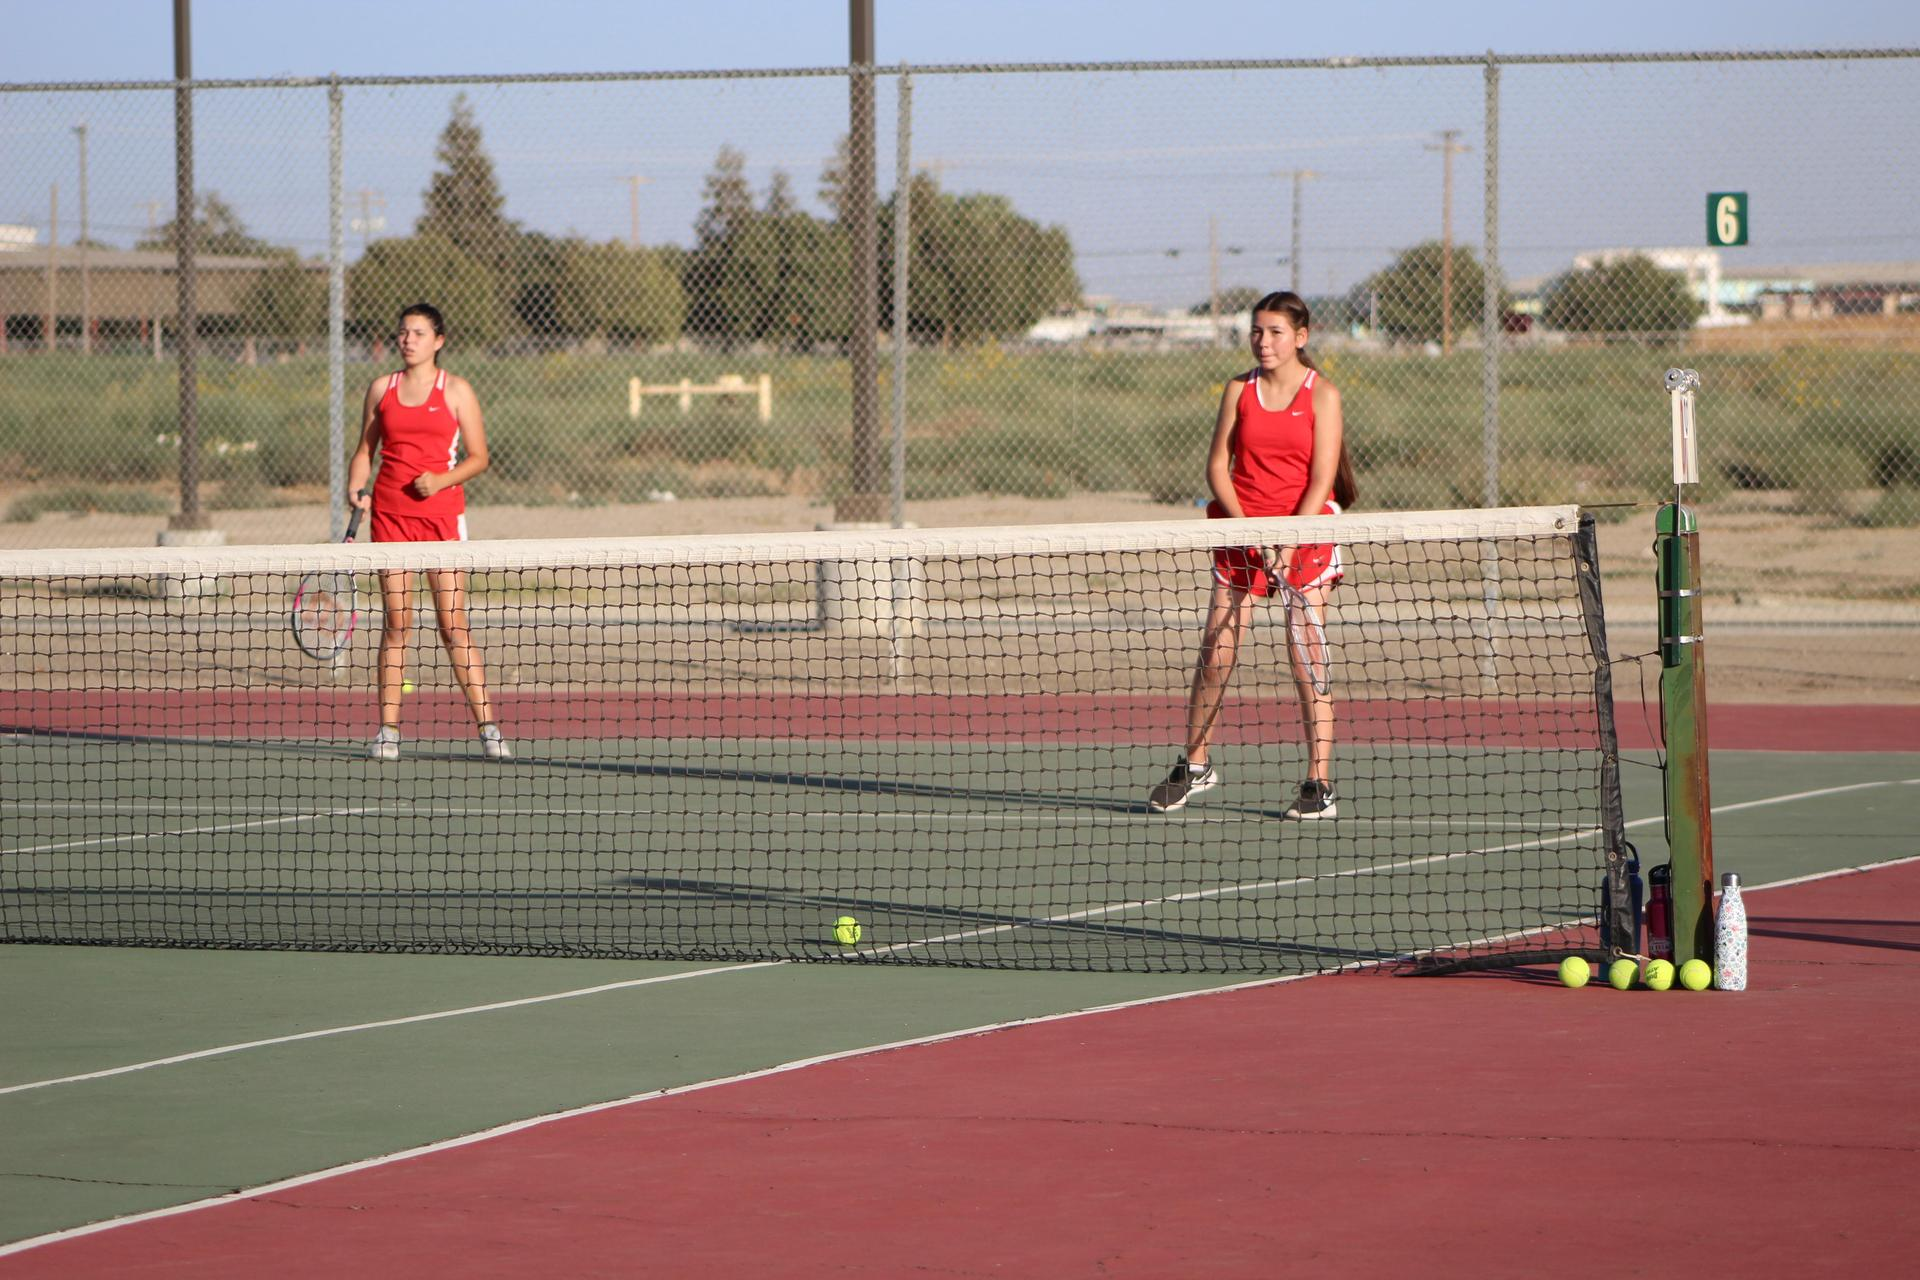 Girls playing tennis against Kerman